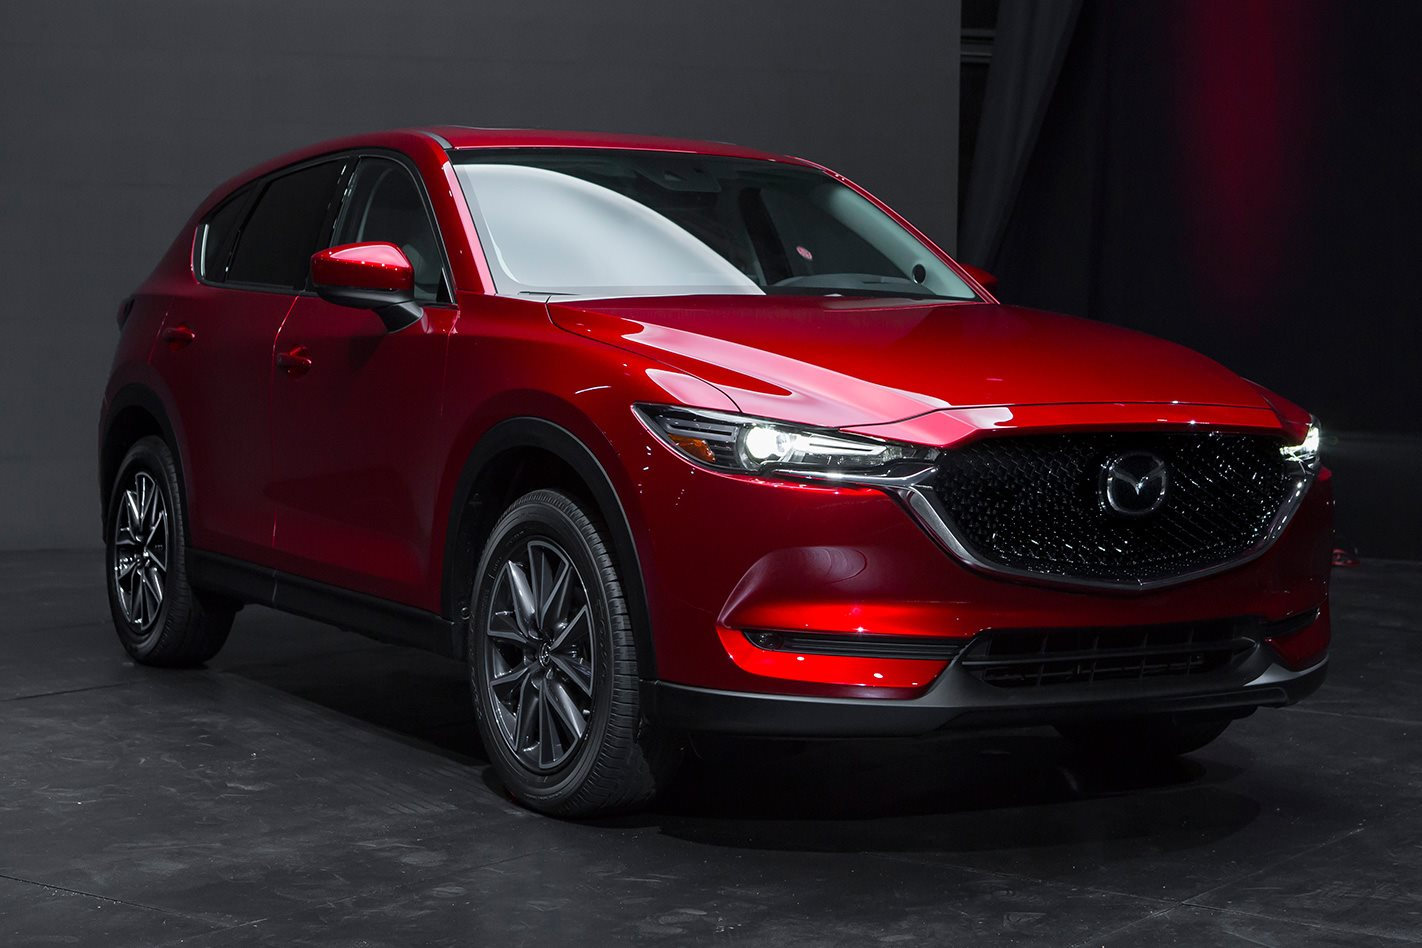 2017 mazda cx 5 aims to maintain suv sales crown. Black Bedroom Furniture Sets. Home Design Ideas